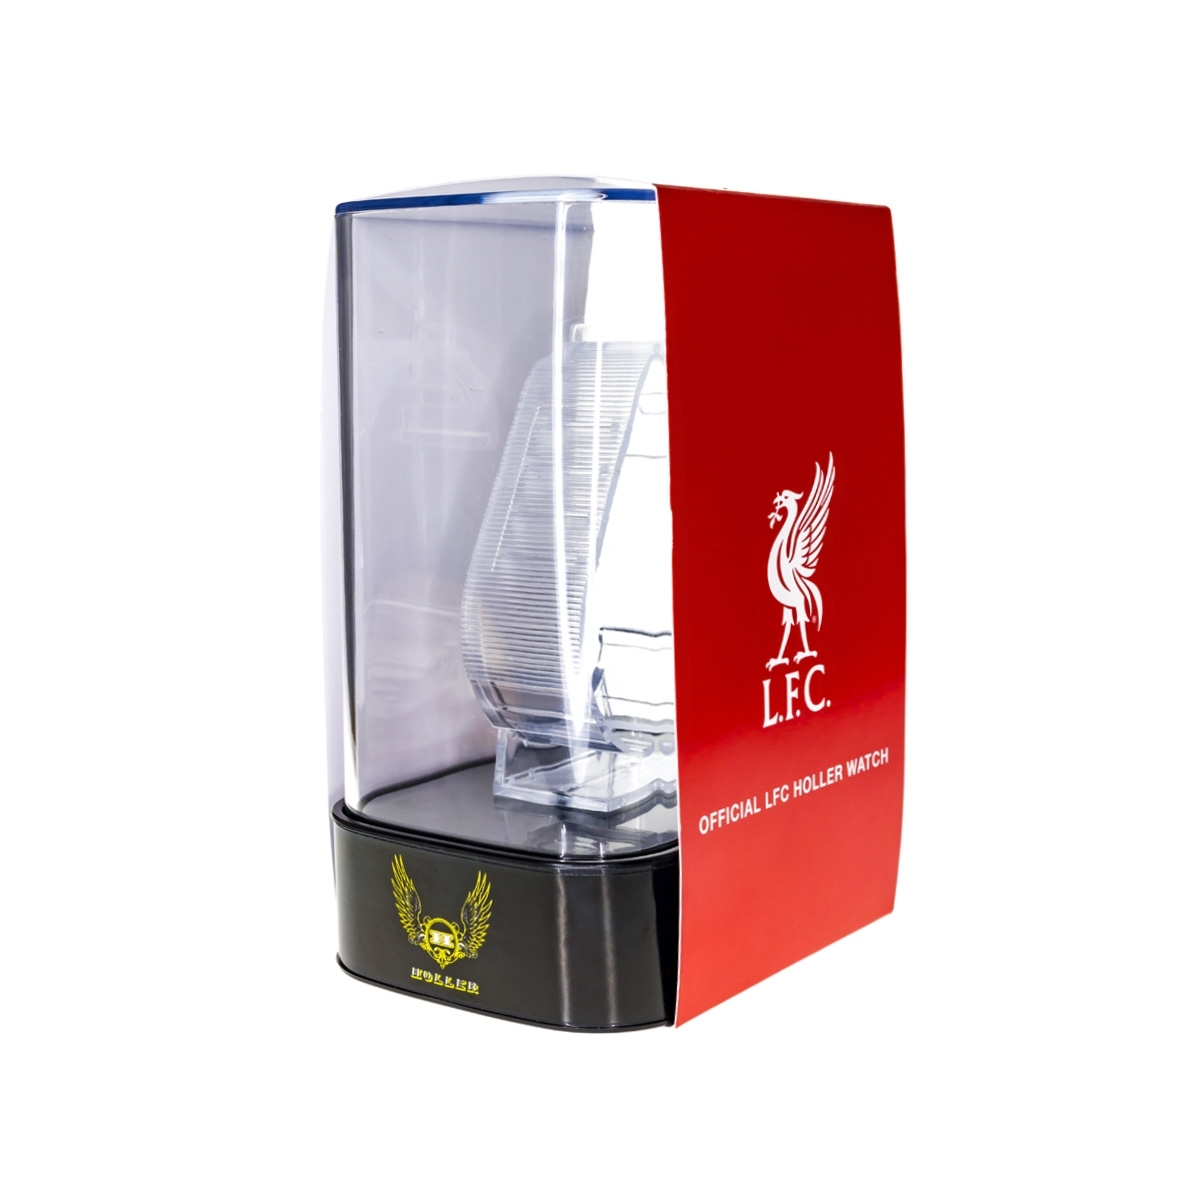 Kop Liverpool FC Watch 1